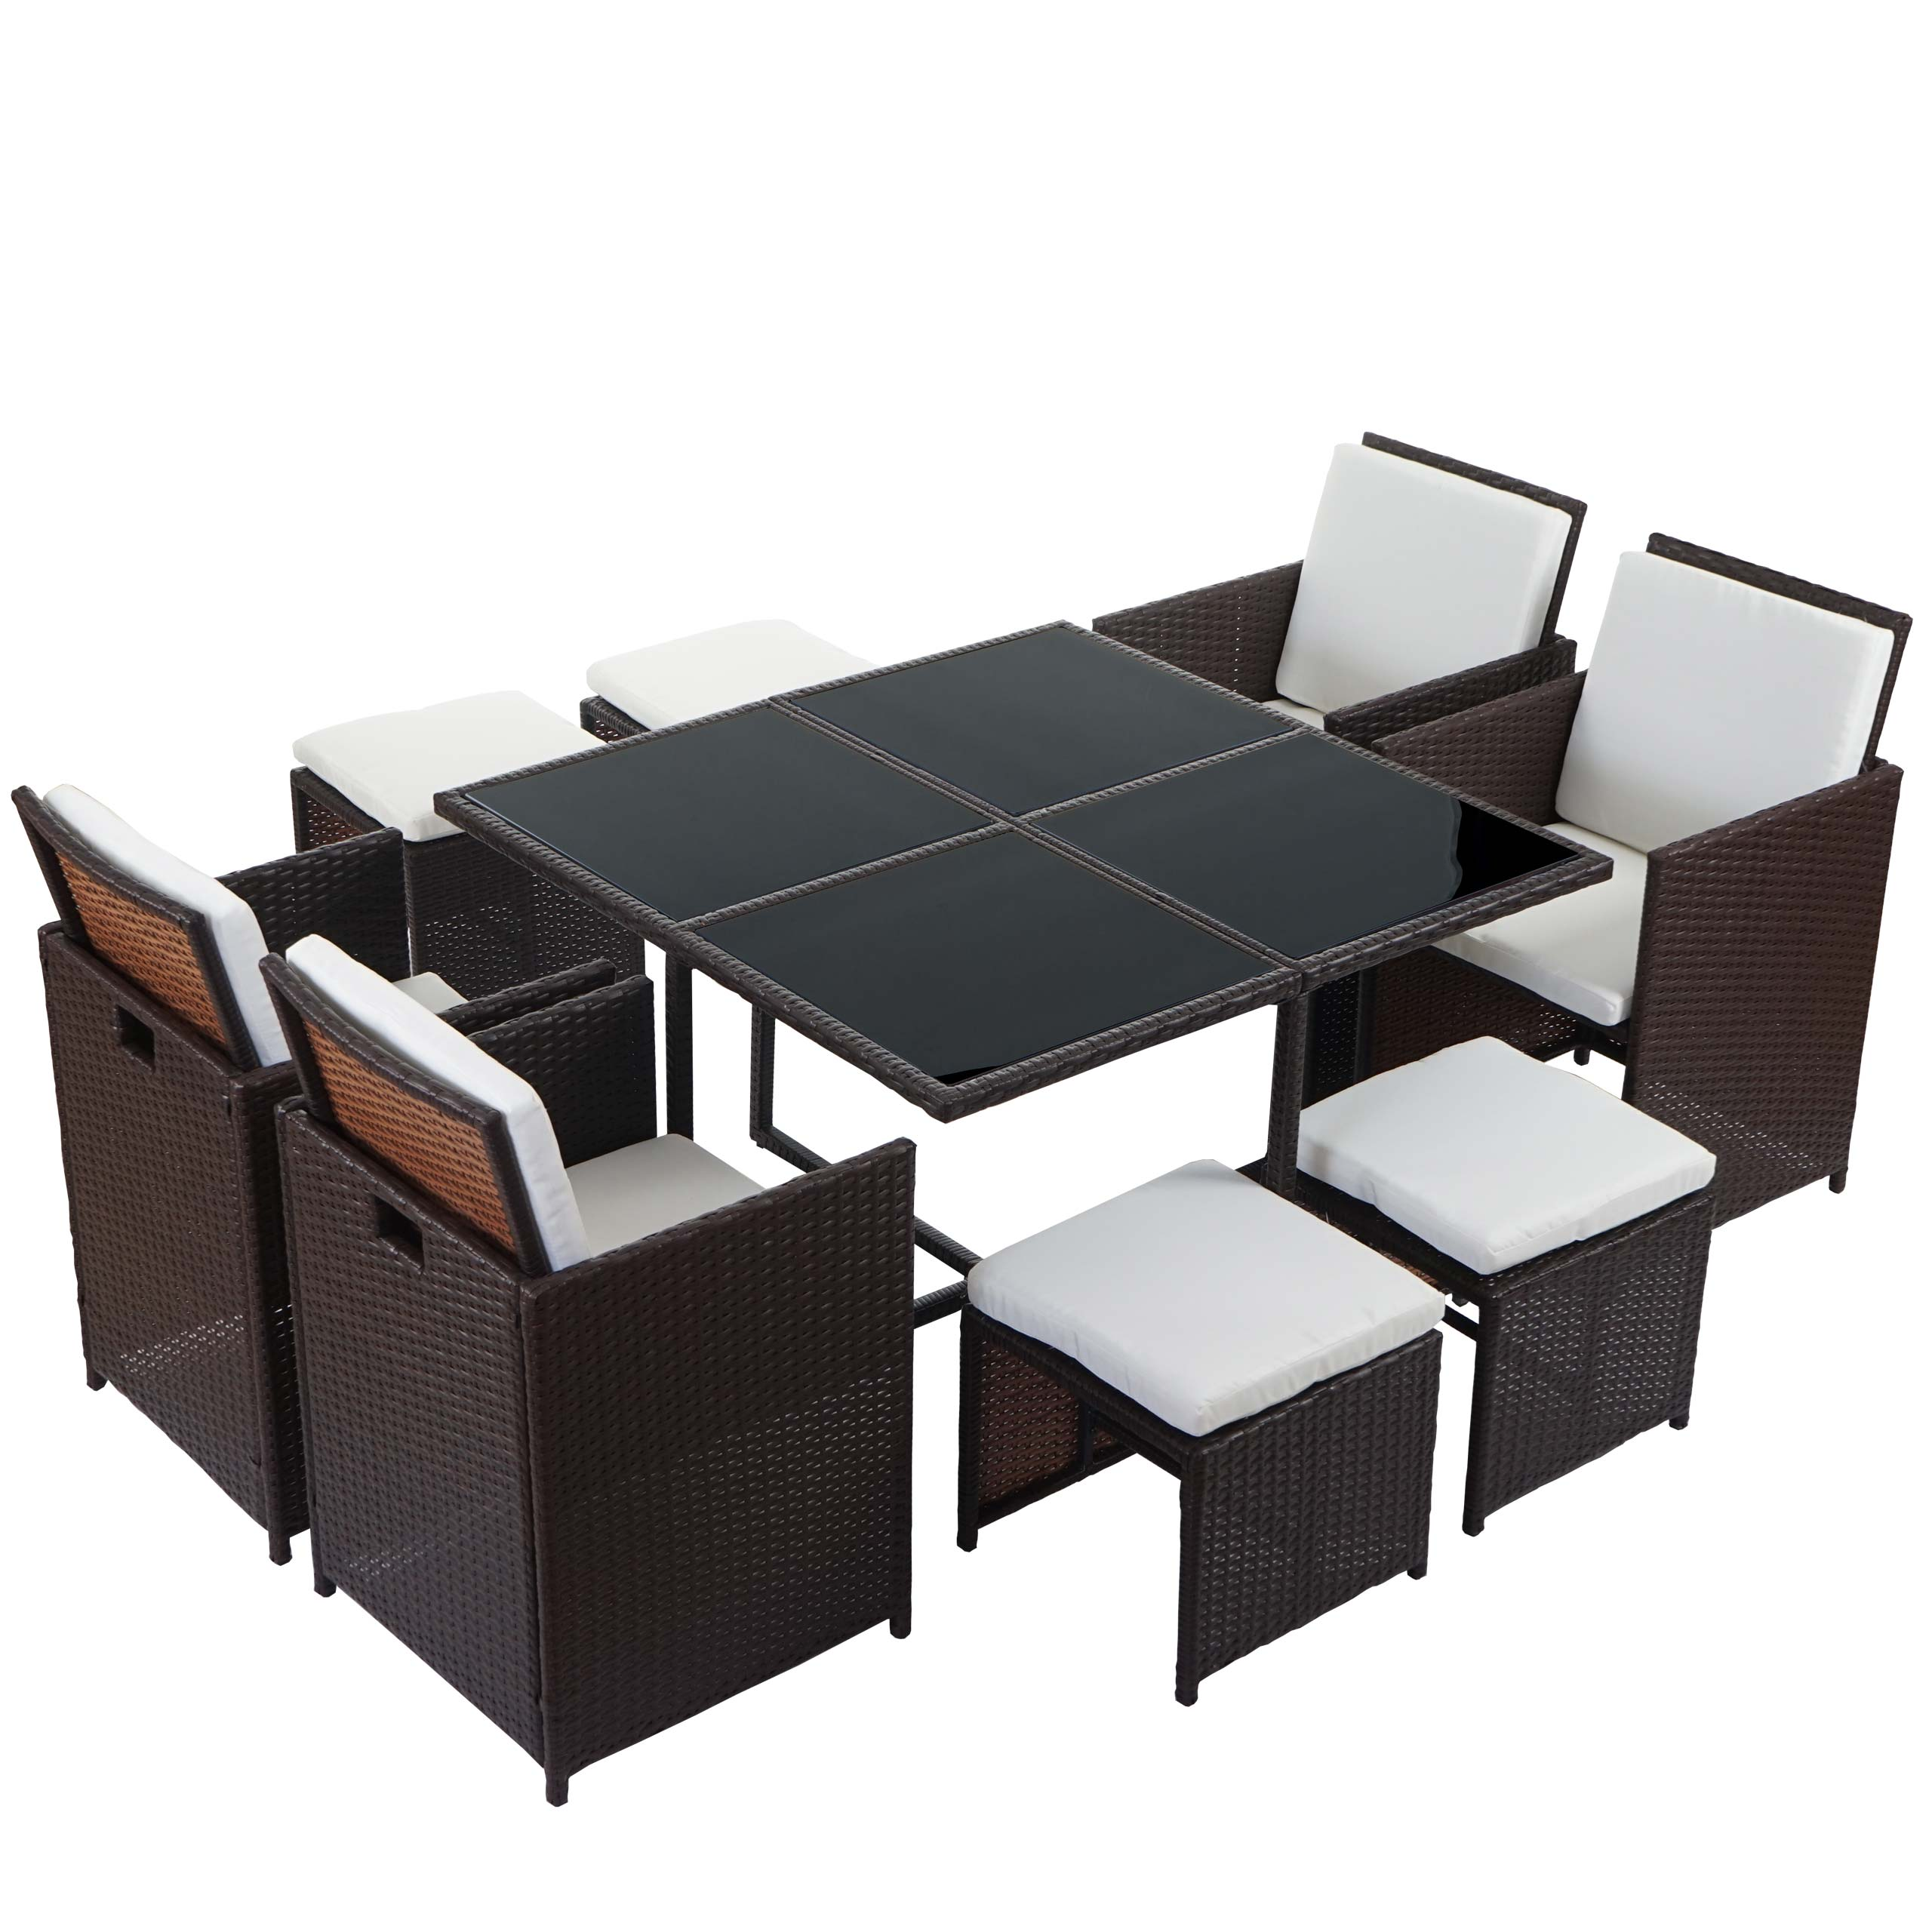 poly rattan garten garnitur kreta lounge set sitzgruppe 4 st hle braun kissen creme. Black Bedroom Furniture Sets. Home Design Ideas